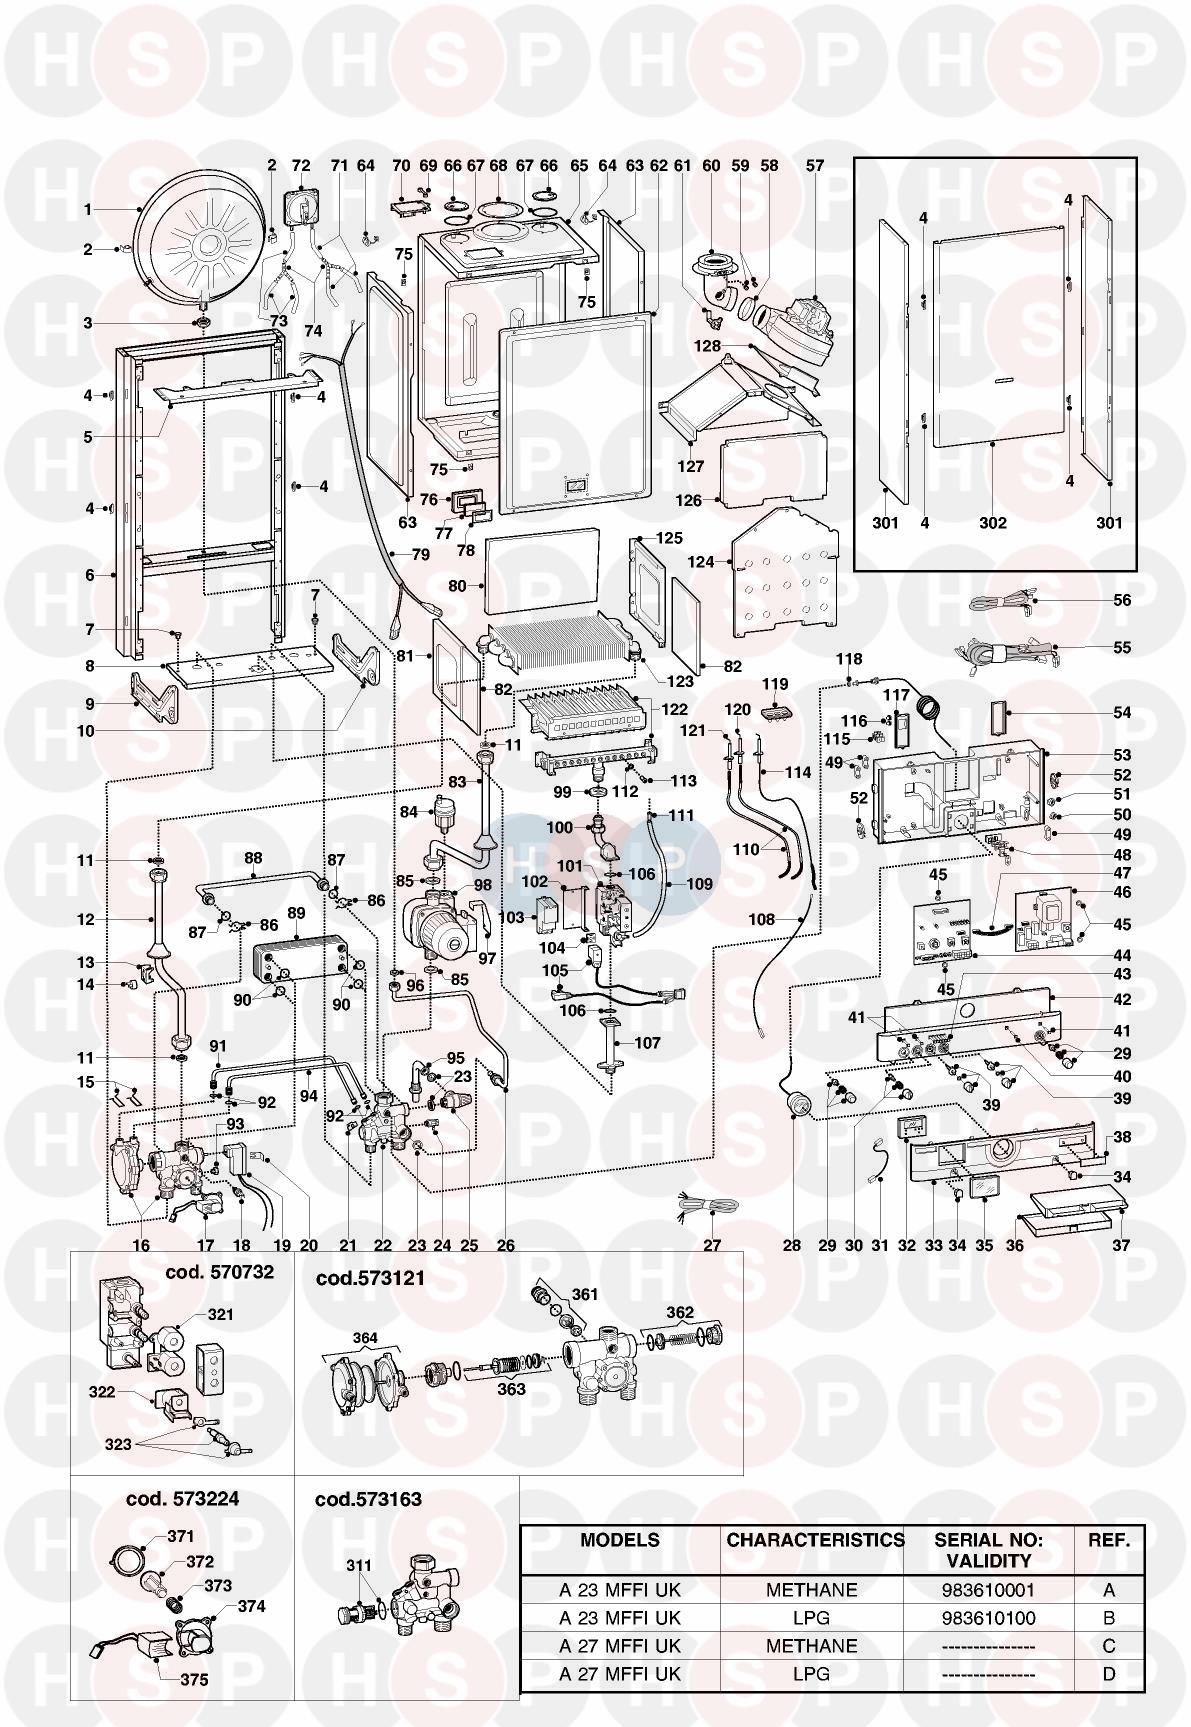 EXPLODED VIEW diagram for Ariston EUROCOMBI A23 MFFI EDITION2